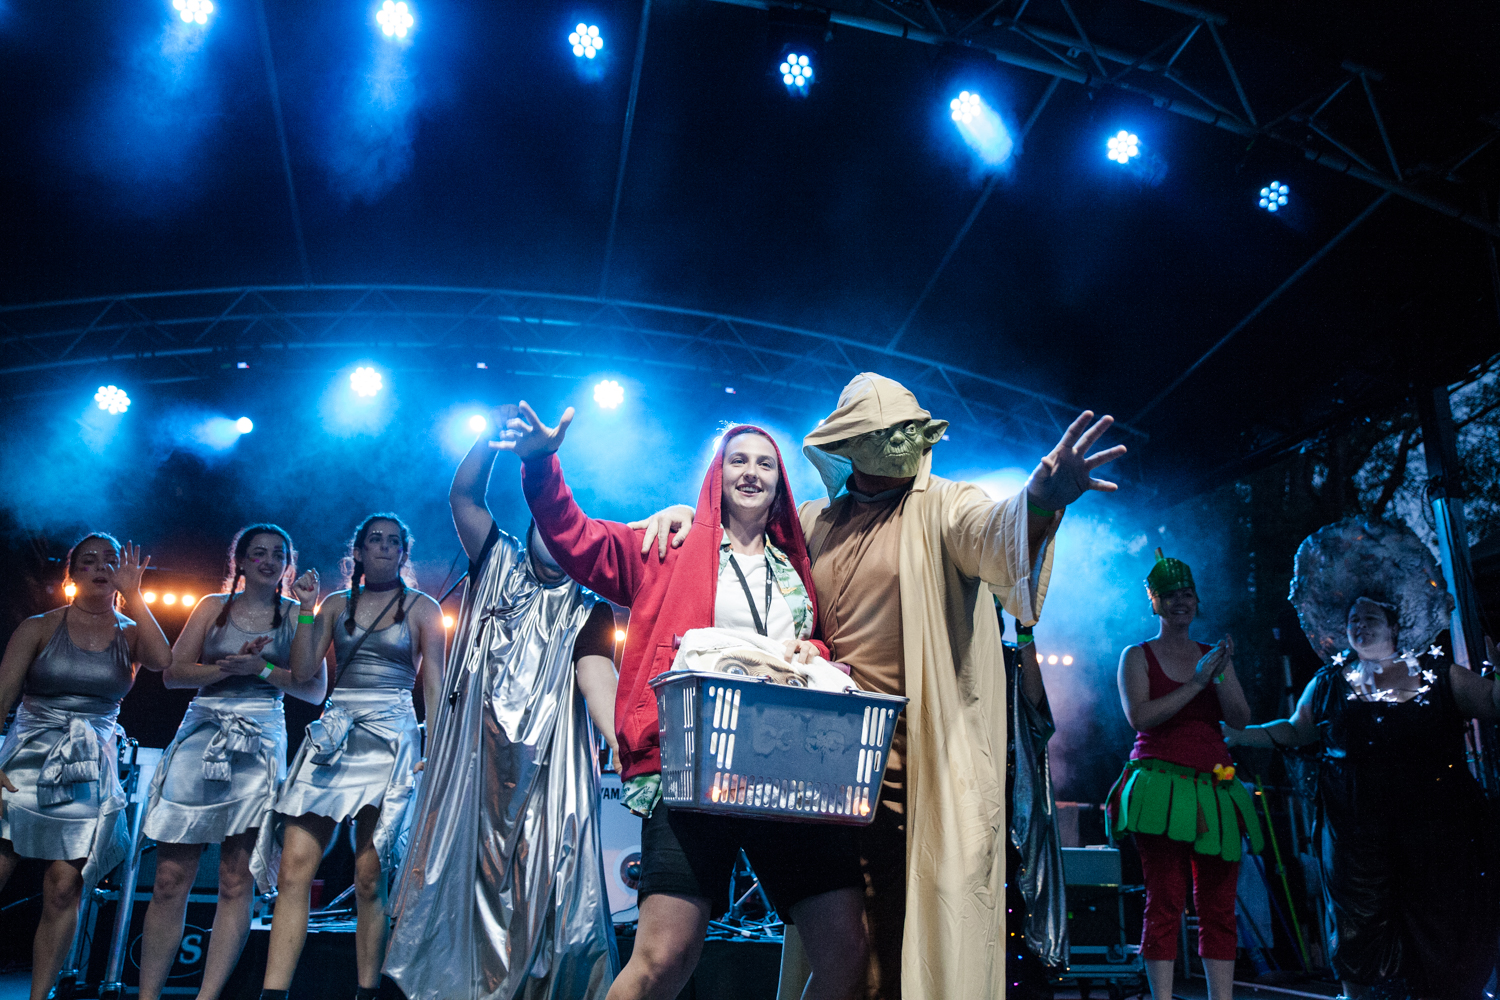 Winners of Space Oddity themed fashion